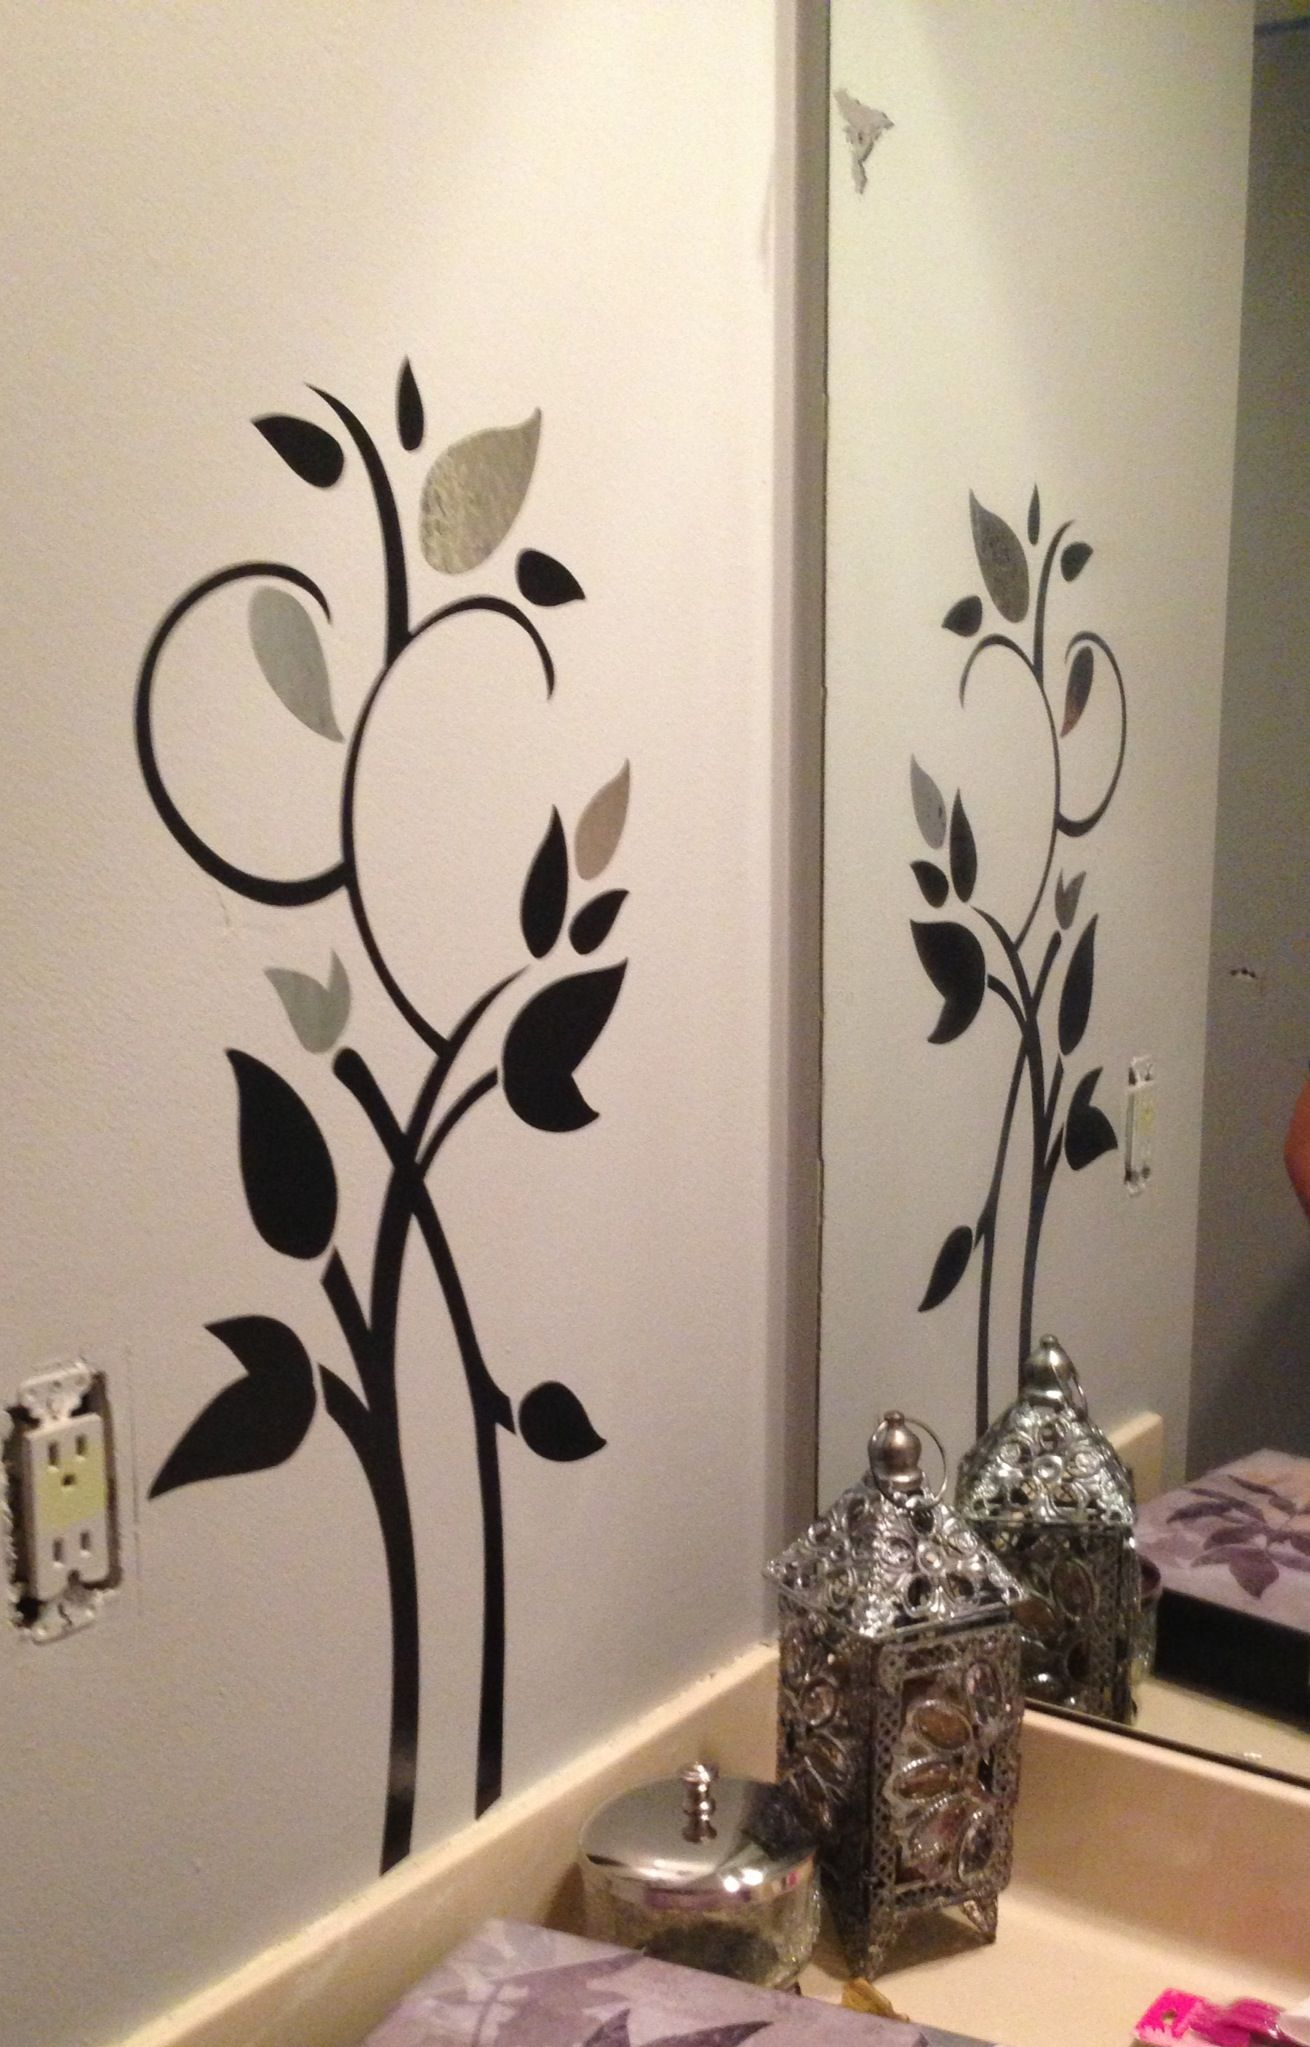 Wall Decals From Target Easy To Do And Inexpensive Wall Paint Designs Simple Wall Paintings Diy Wall Painting